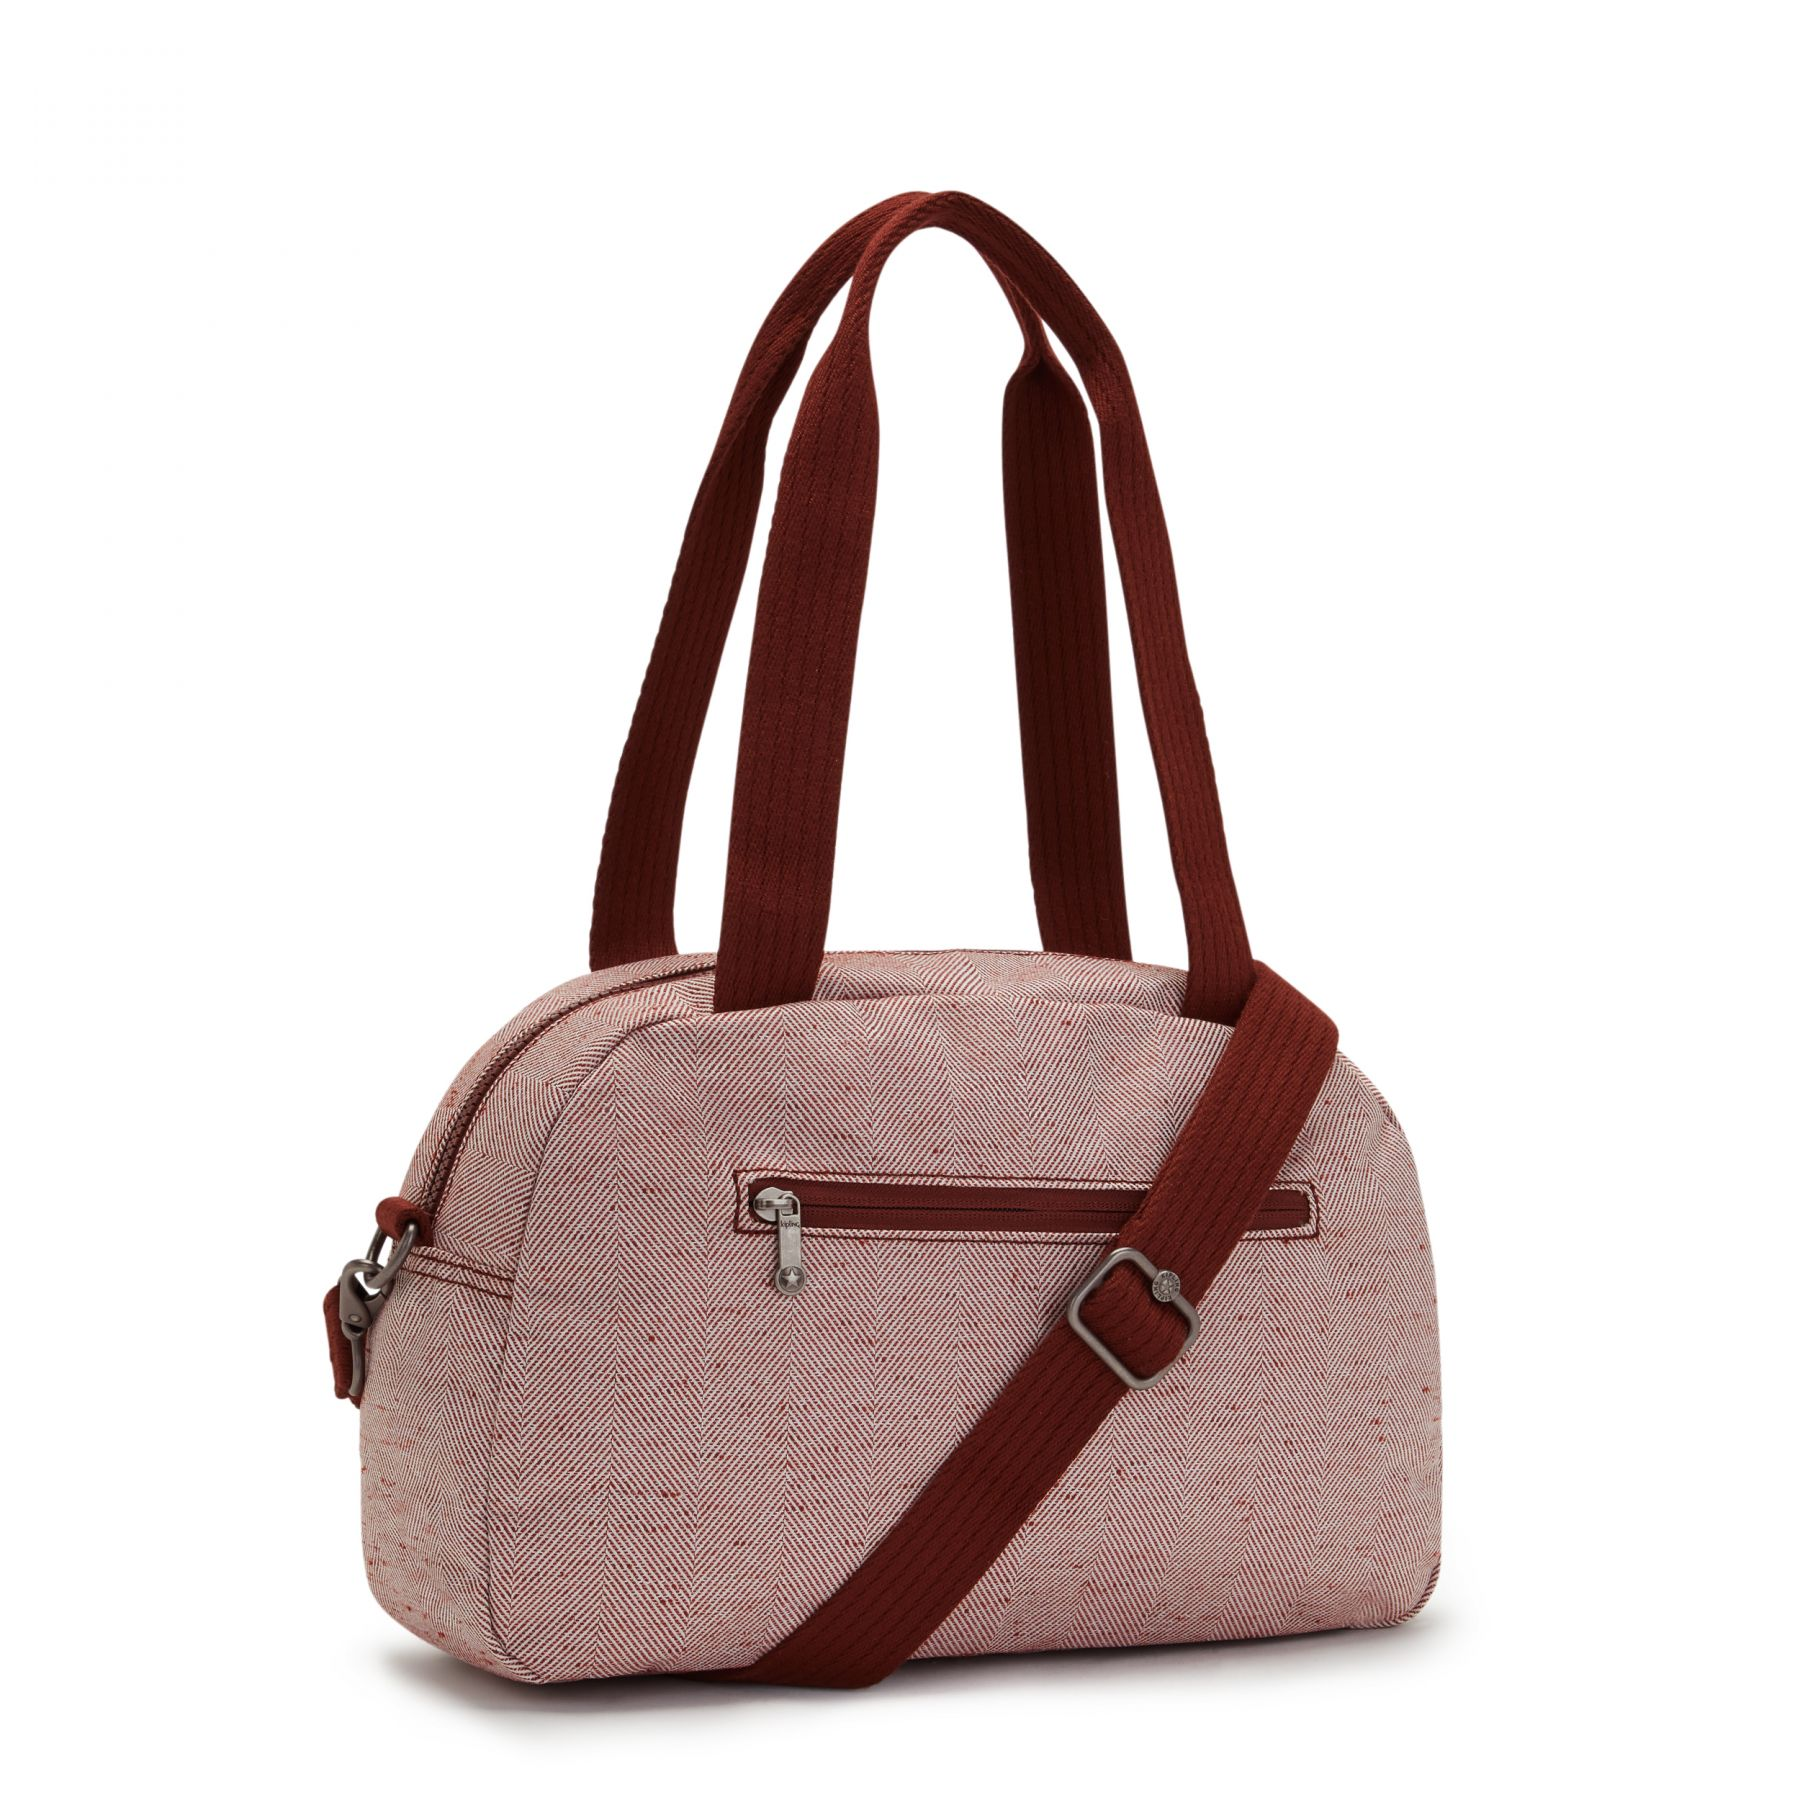 COOL DEFEA BAGS by Kipling - Back view